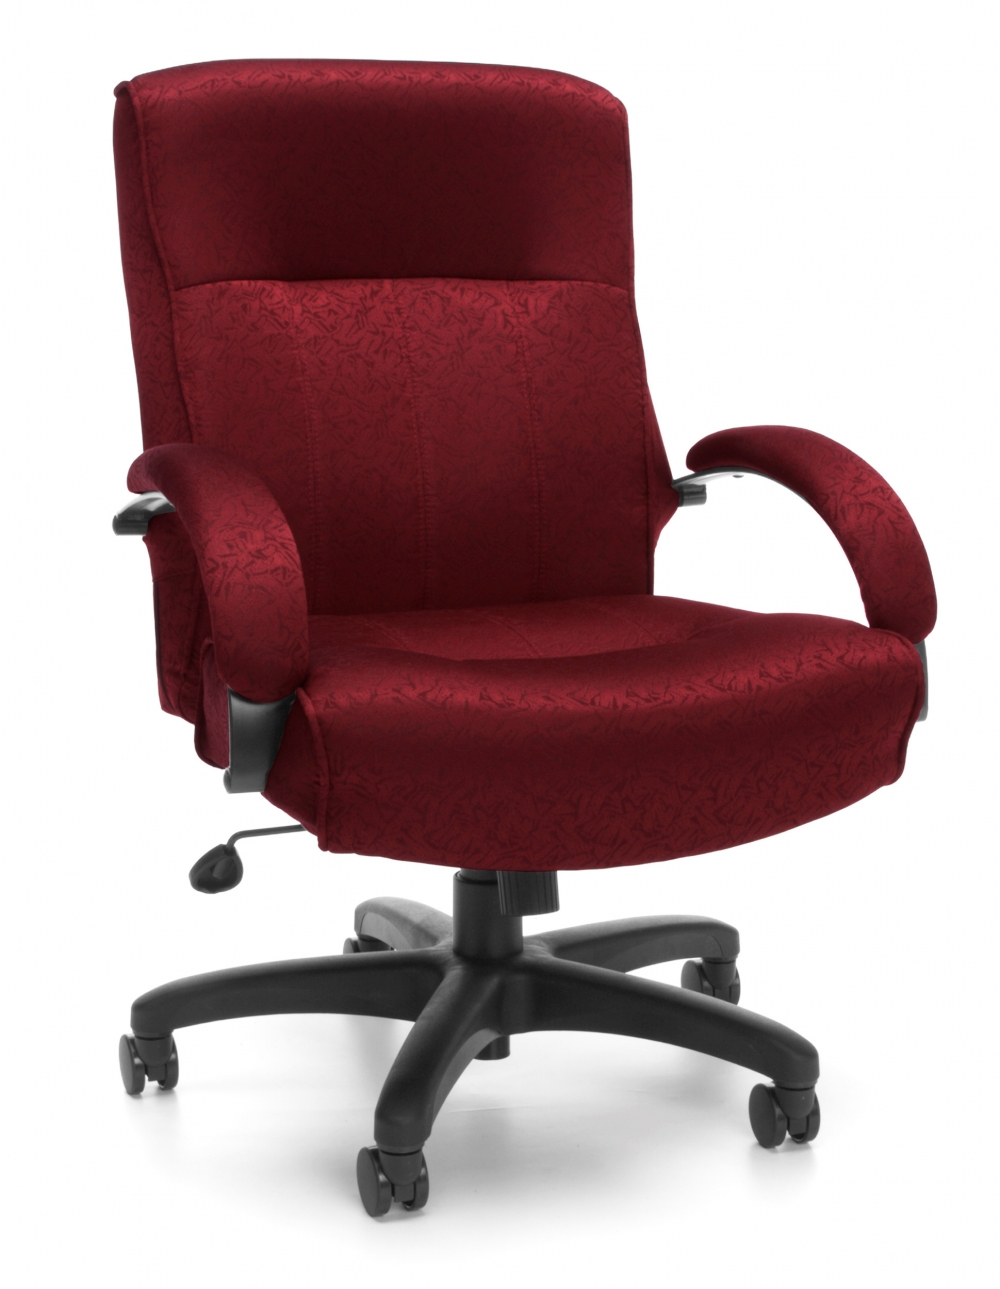 Big and tall executive office chairs cub 711 303 1 burgundy mfo